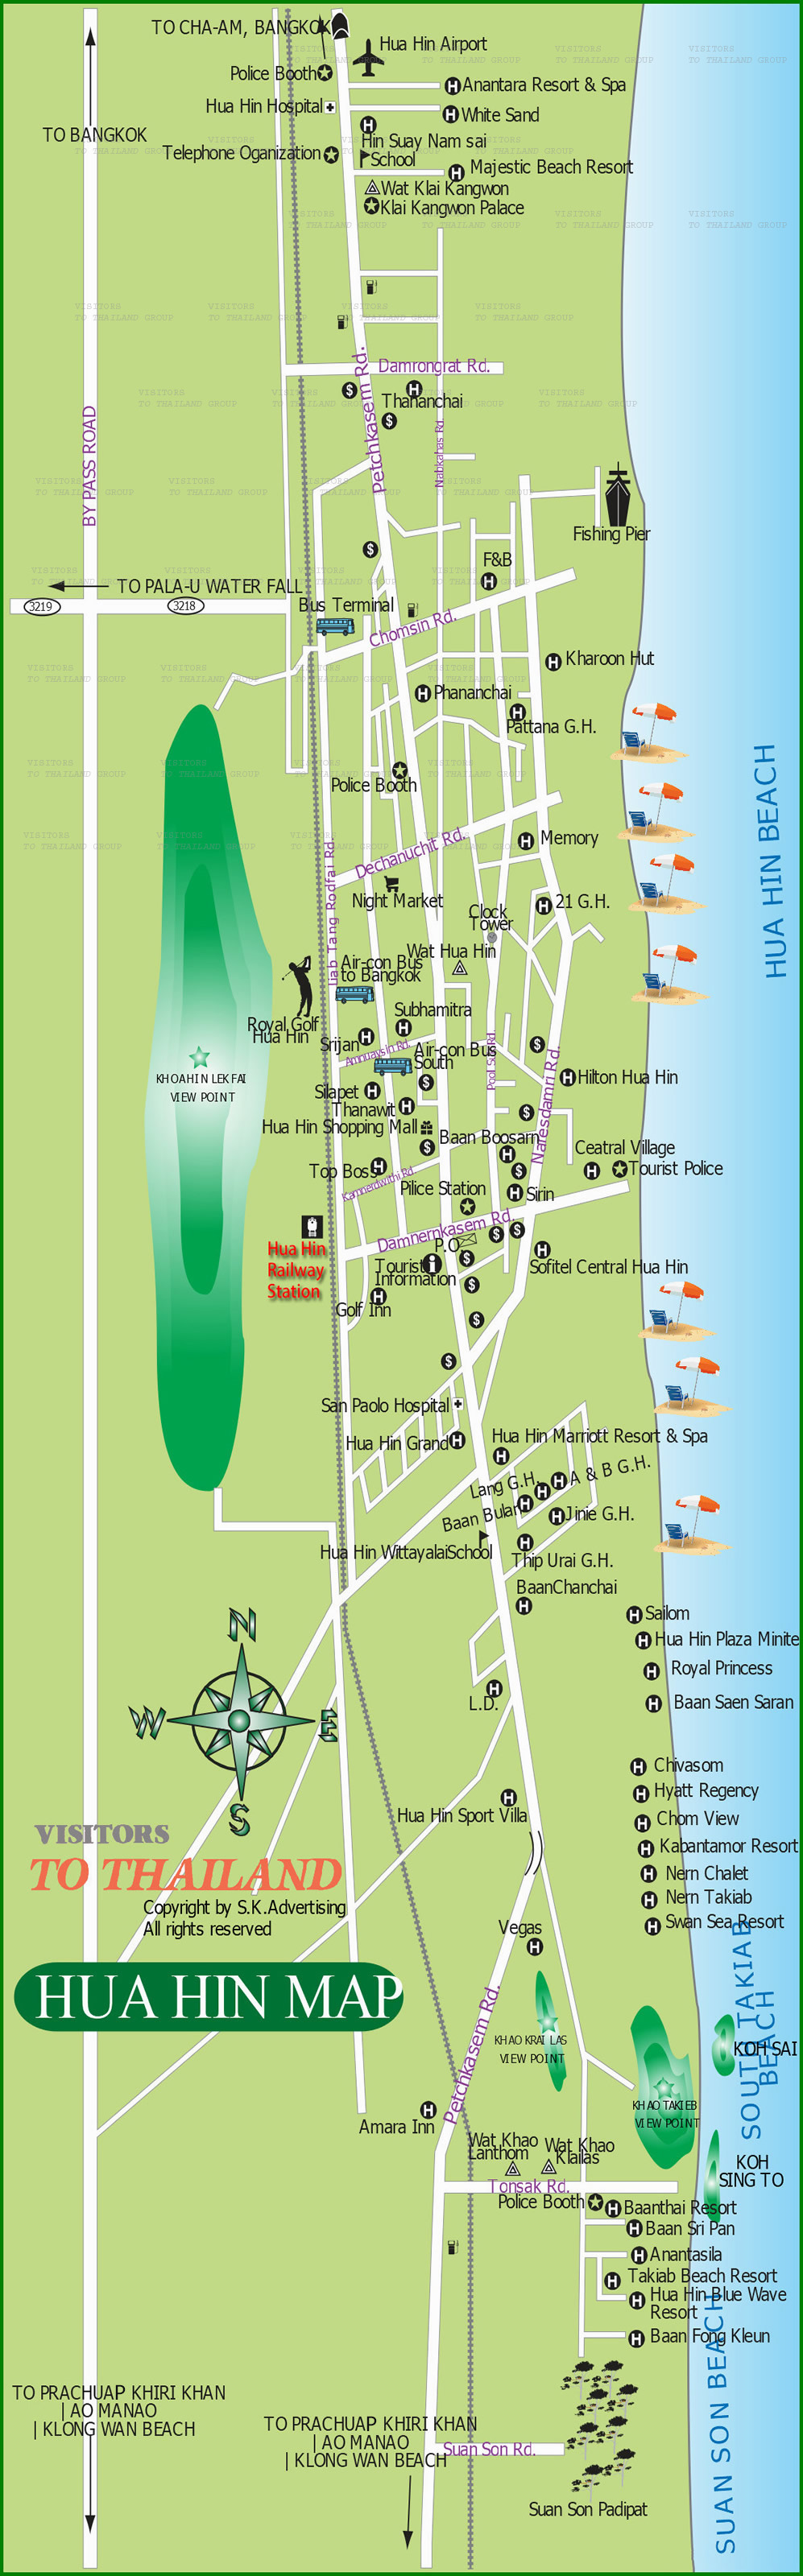 Hua Hin City Map Map Of Hua Hin Thailand on map of sydney australia, map of goa india, night market hua hin thailand, map of panama city florida, map of queenstown new zealand, map of singapore, map of wildwood new jersey, map hua hin beach, map of christchurch new zealand, map of jaco costa rica, map of melbourne australia, map of paris france, map of auckland new zealand, map of queensland australia, map of sun valley idaho, map of nantucket island massachusetts, map of cabo san lucas mexico, map of tokyo japan, map of provincetown massachusetts, hotel in hua hin thailand,